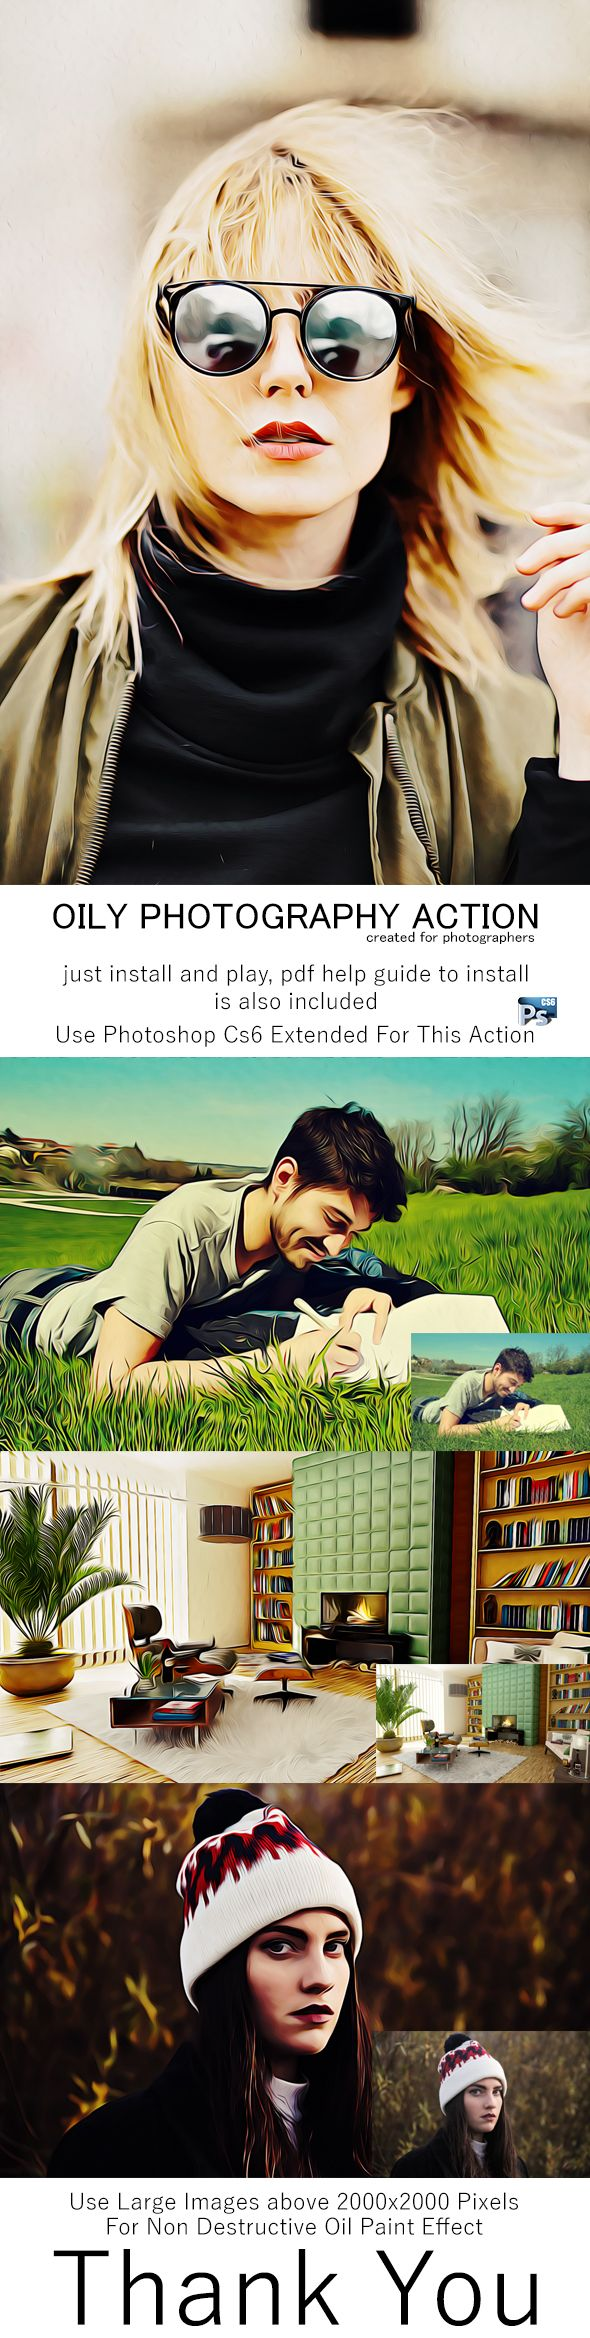 Oily Photography Action - Photo Effects Actions